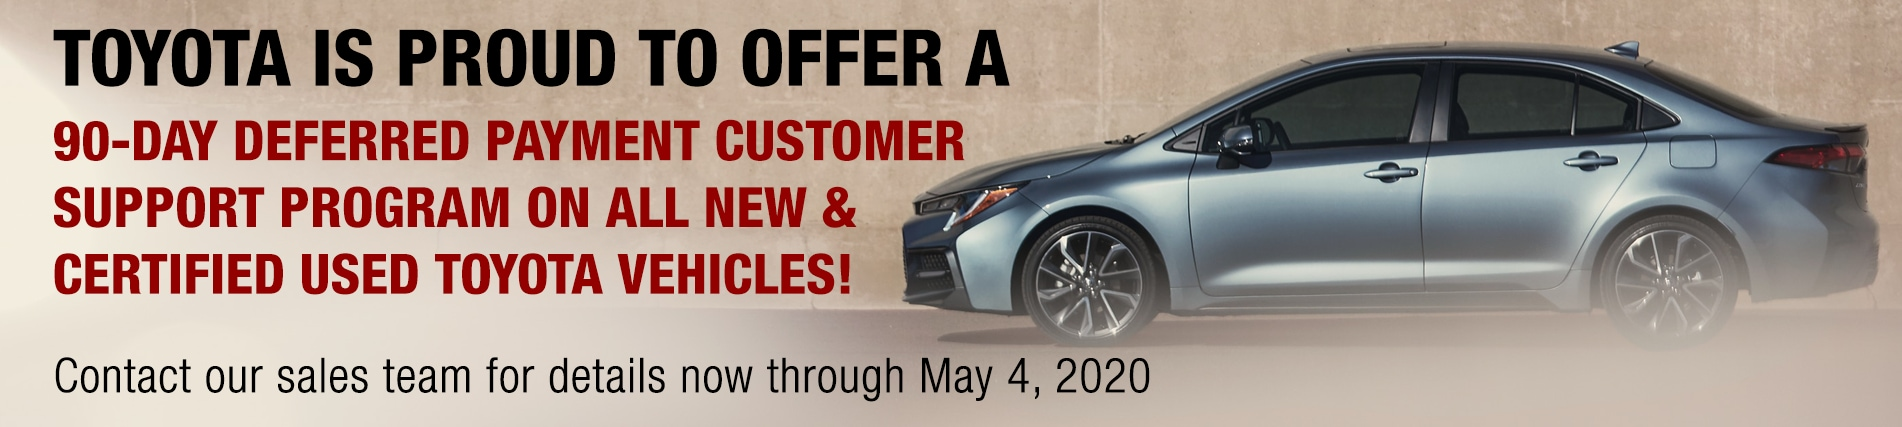 Toyota 90 Day Deferred Payment Customer Support Program